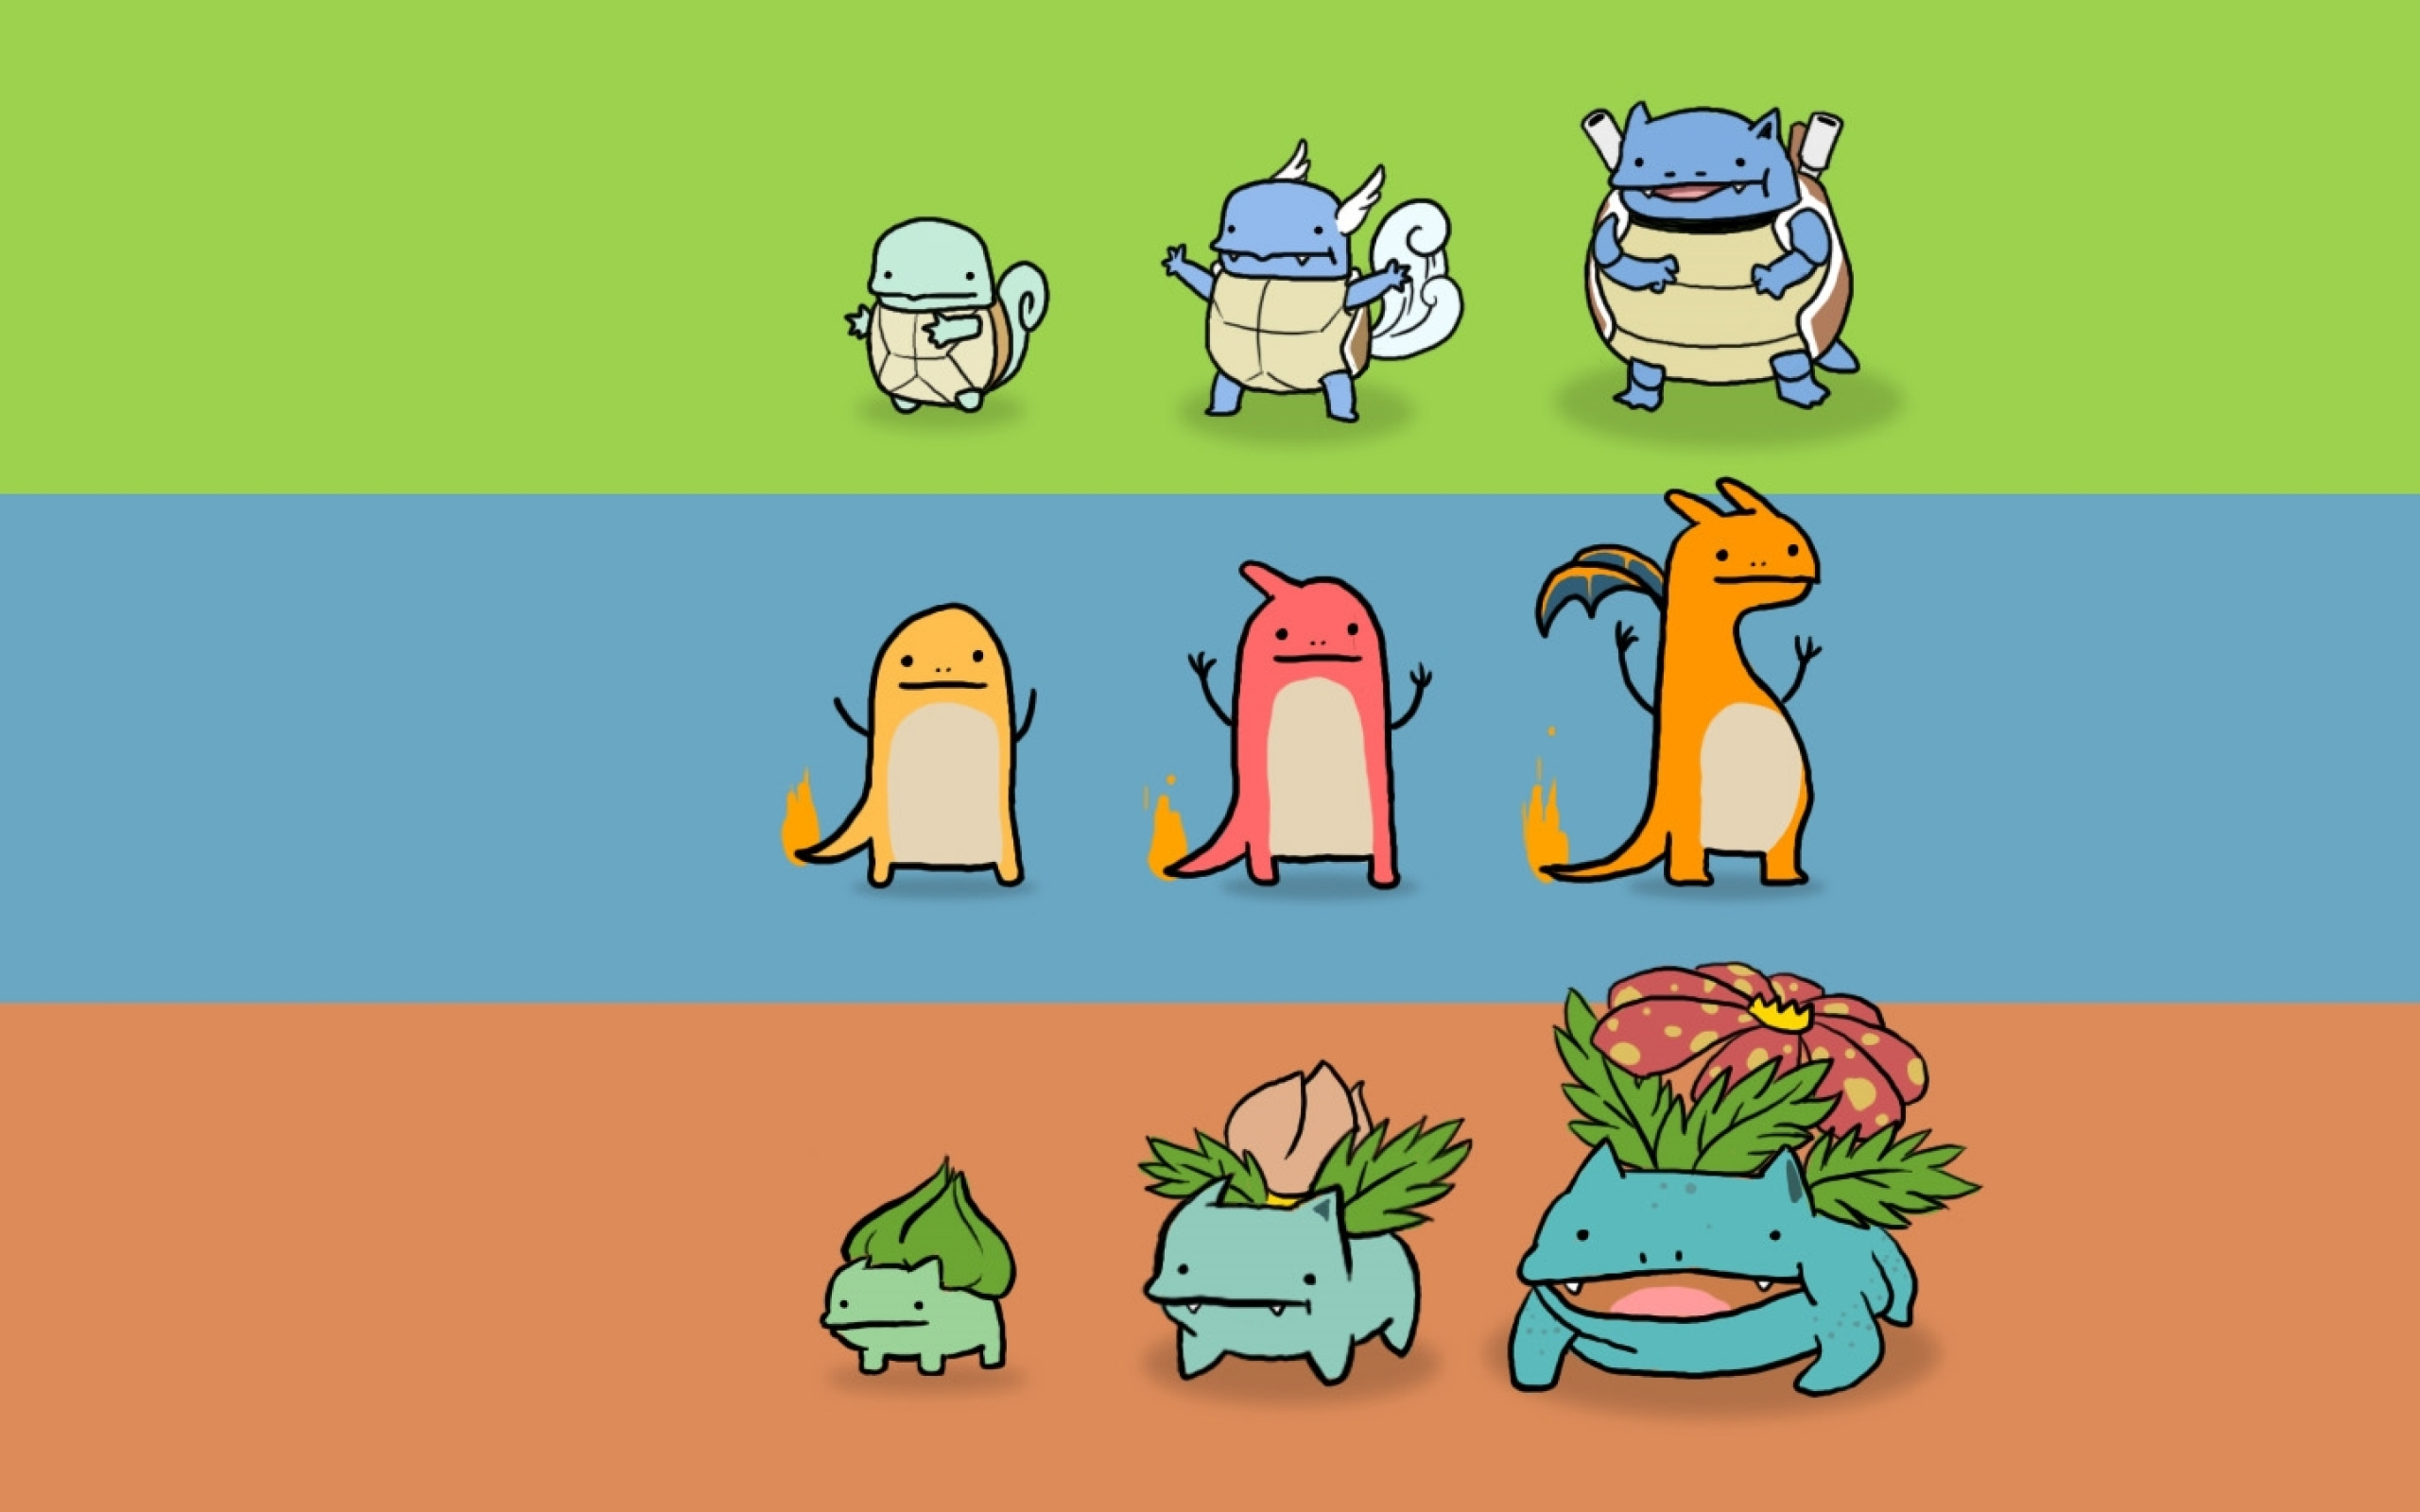 Pokemon Wallpaper Tumblr Images | Pokemon Images